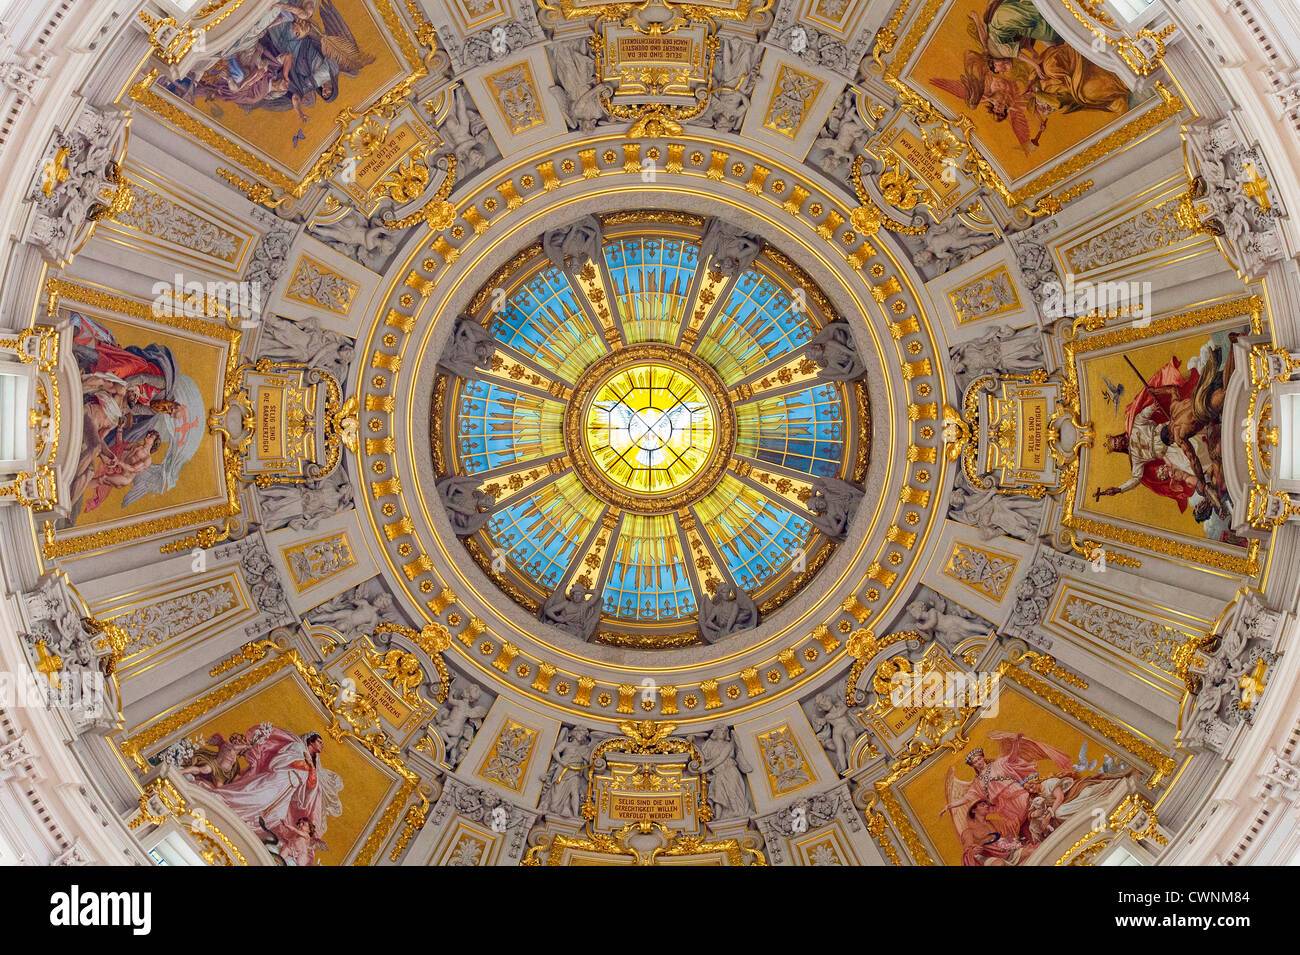 Europe, Germany, Berlin, Berlin Cathedral - Stock Image